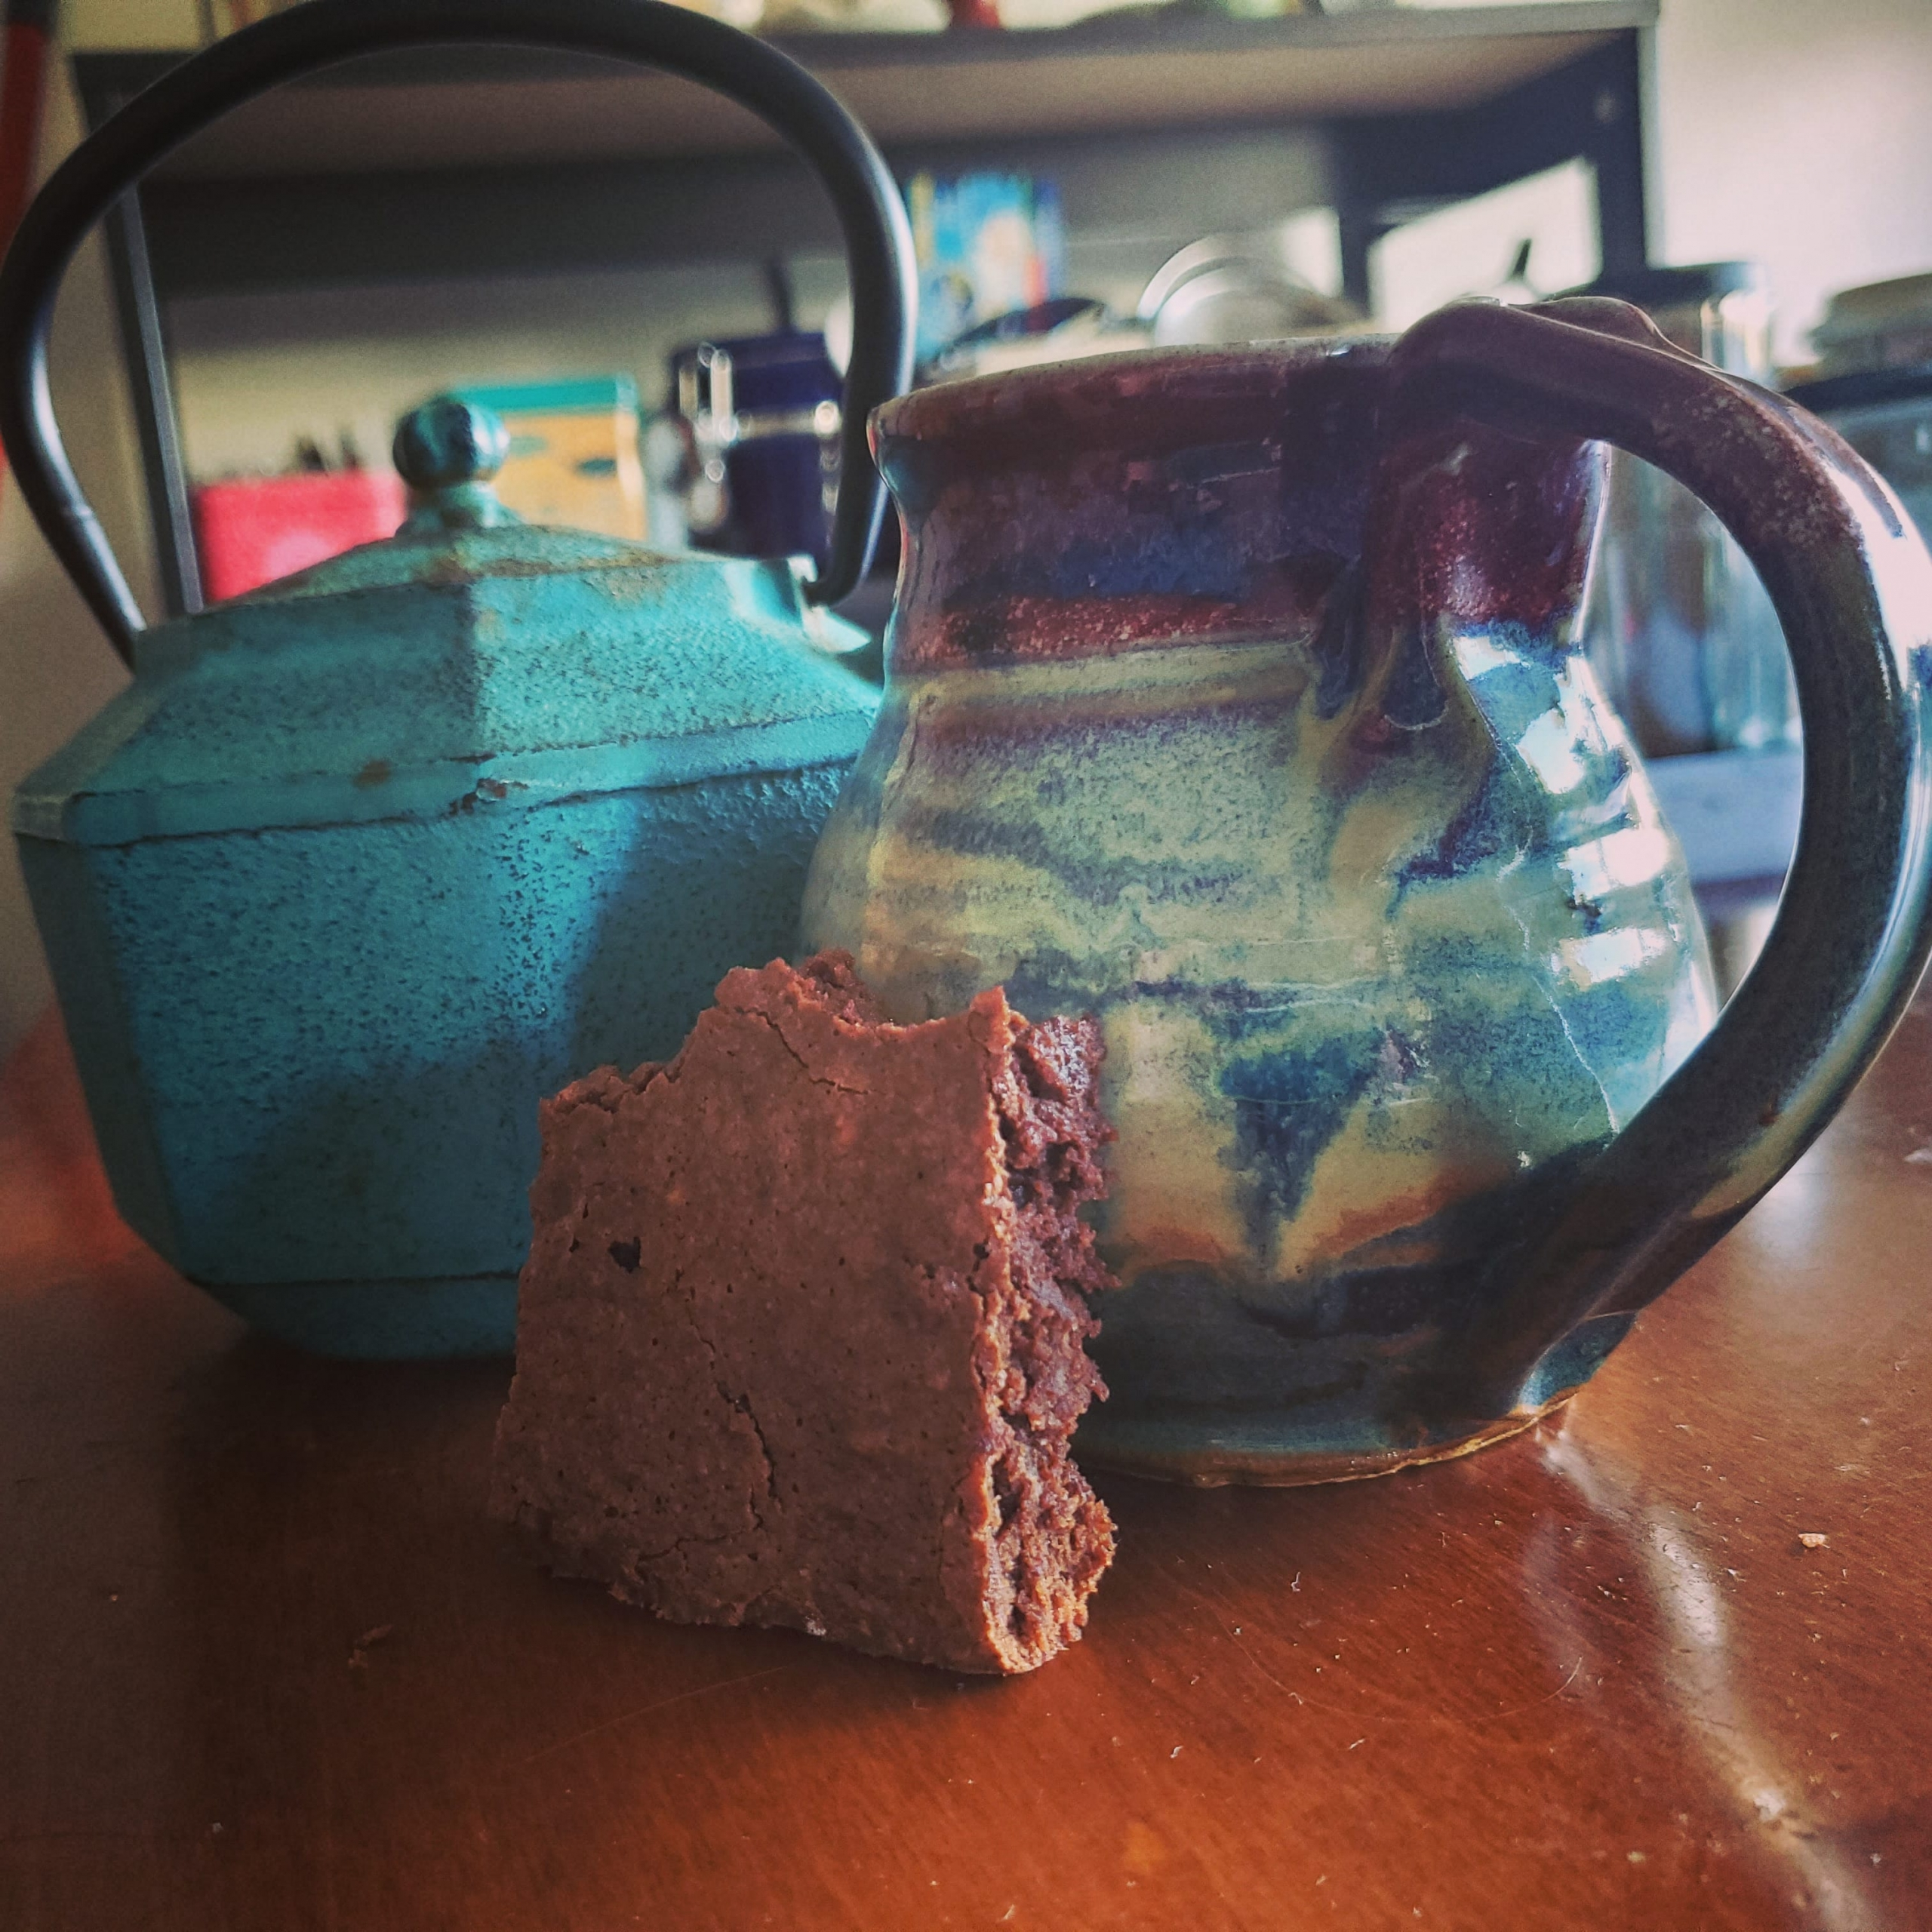 Coffee and Brownie during isolation